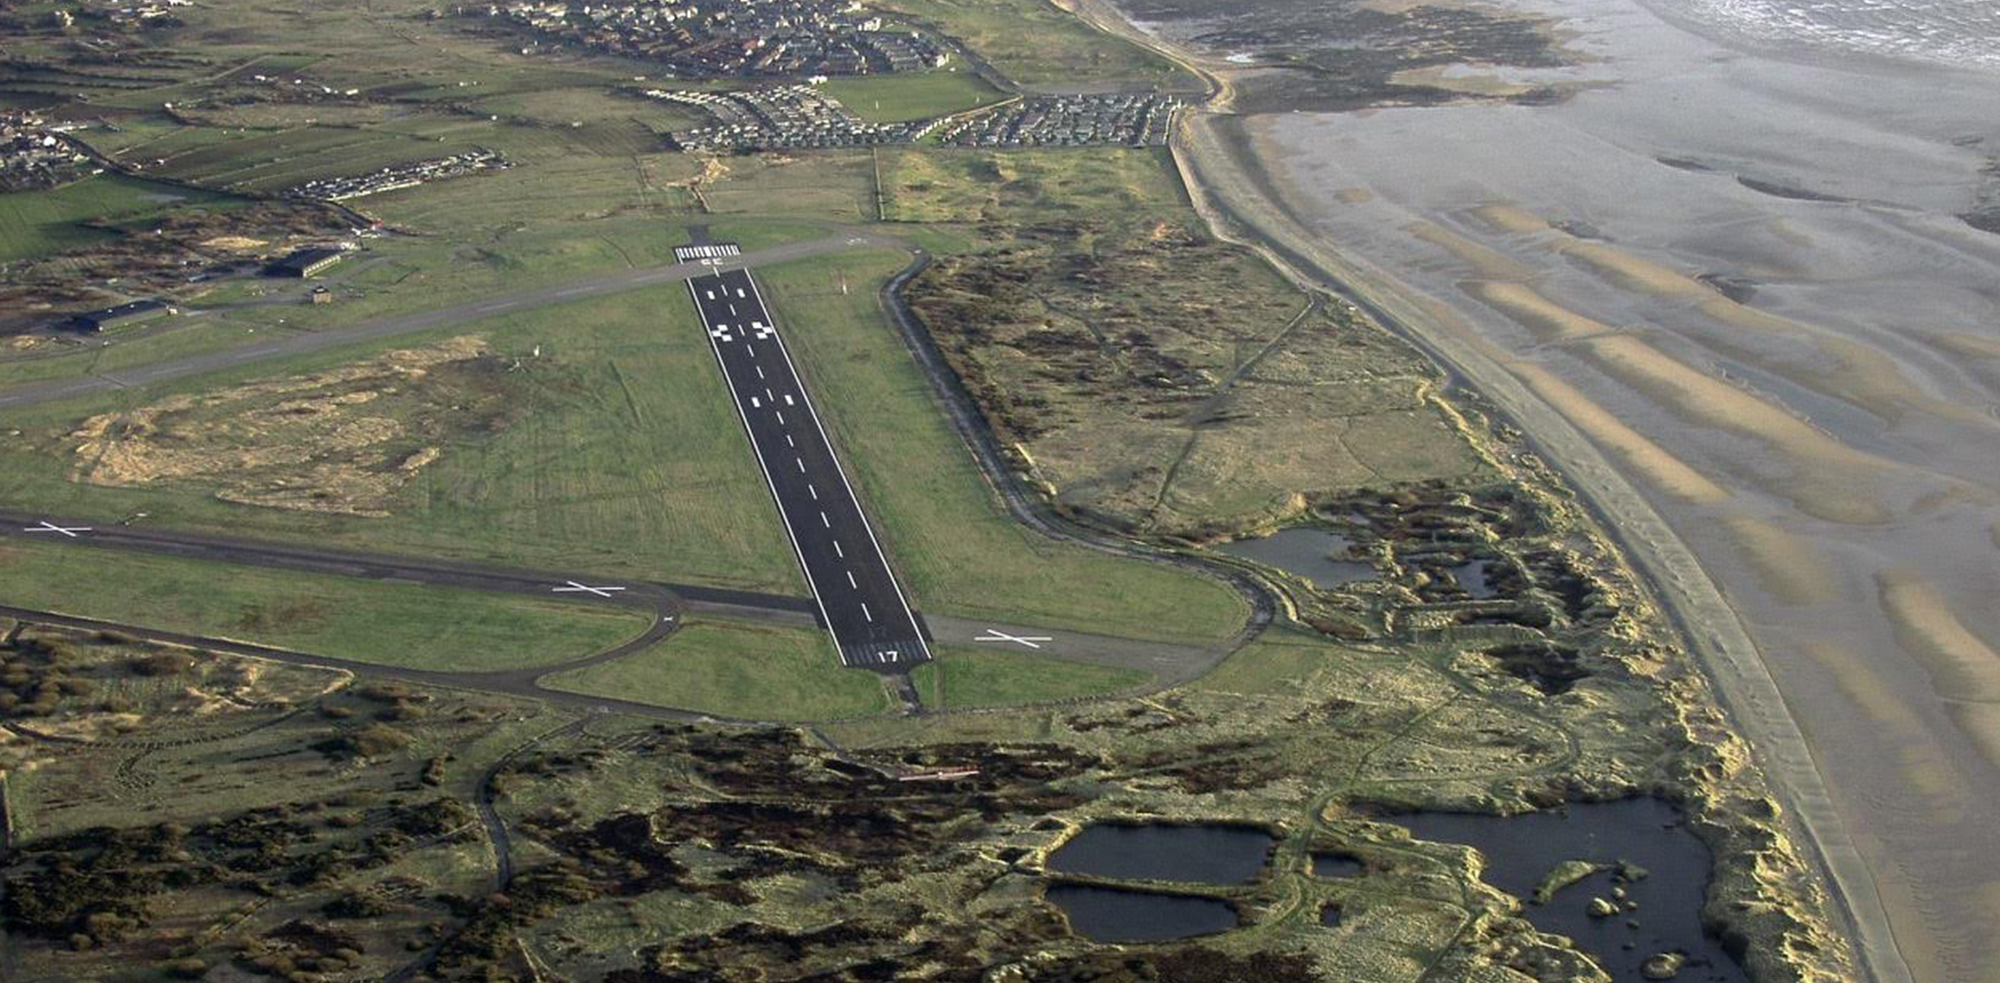 http://www.art-gene.co.uk/wp-content/uploads/2016/10/HEADER-FORT-WALNEY-Lawrence-Hill-2005-Aerial-Photos-of-the-North-Walney-National-Nature-Reserve.jpg